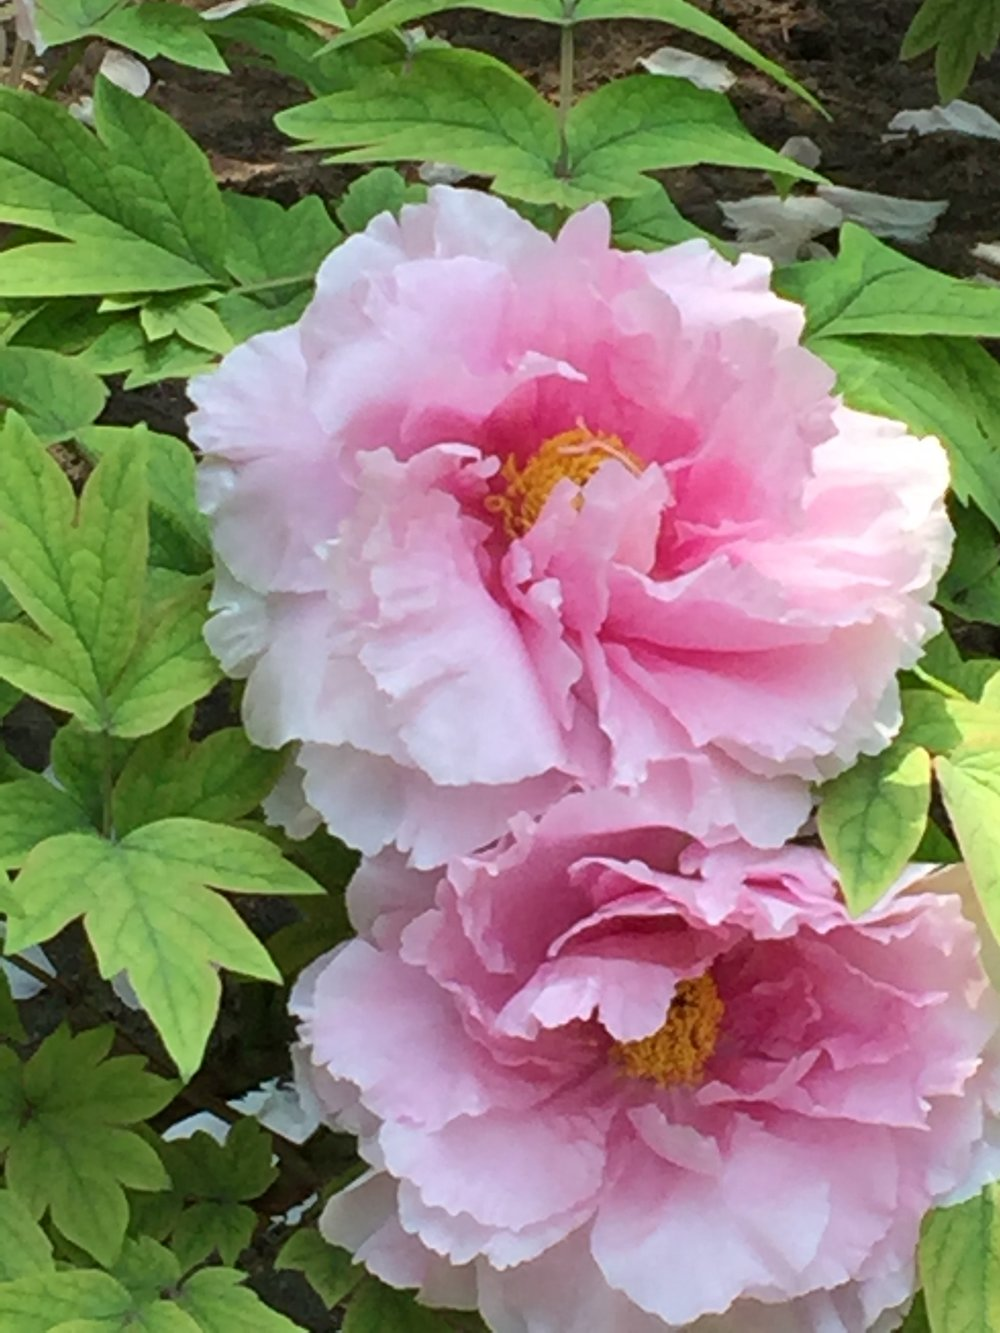 Peonies in bloom in Jingshan Park, Beijing